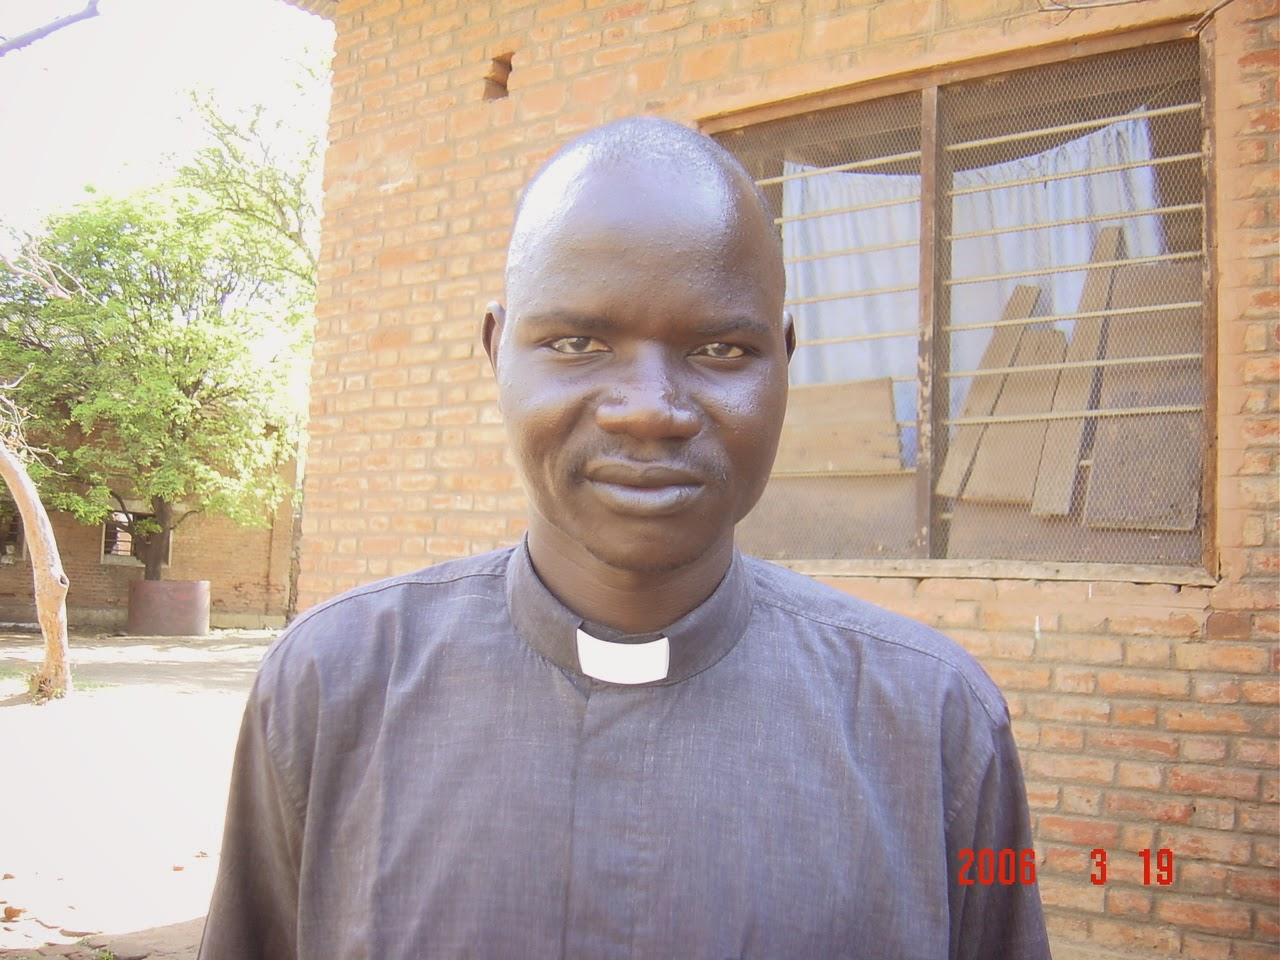 Secretary General of the Bishops Conference of Sudan